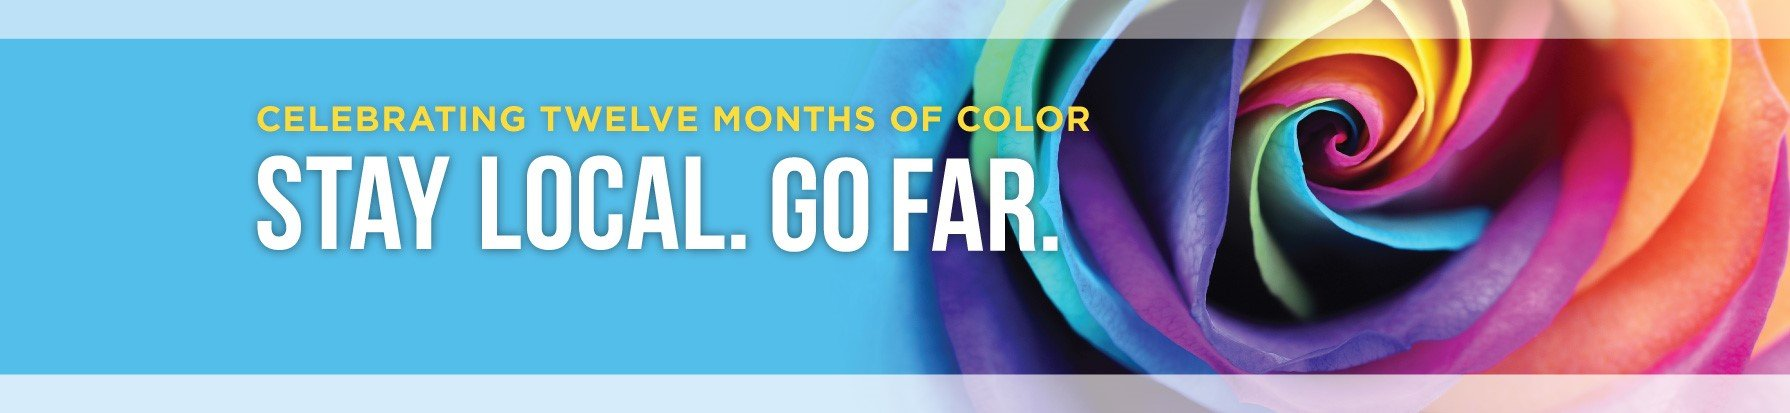 celebrating twelve months of color 2018 photo calendar contest click to learn more